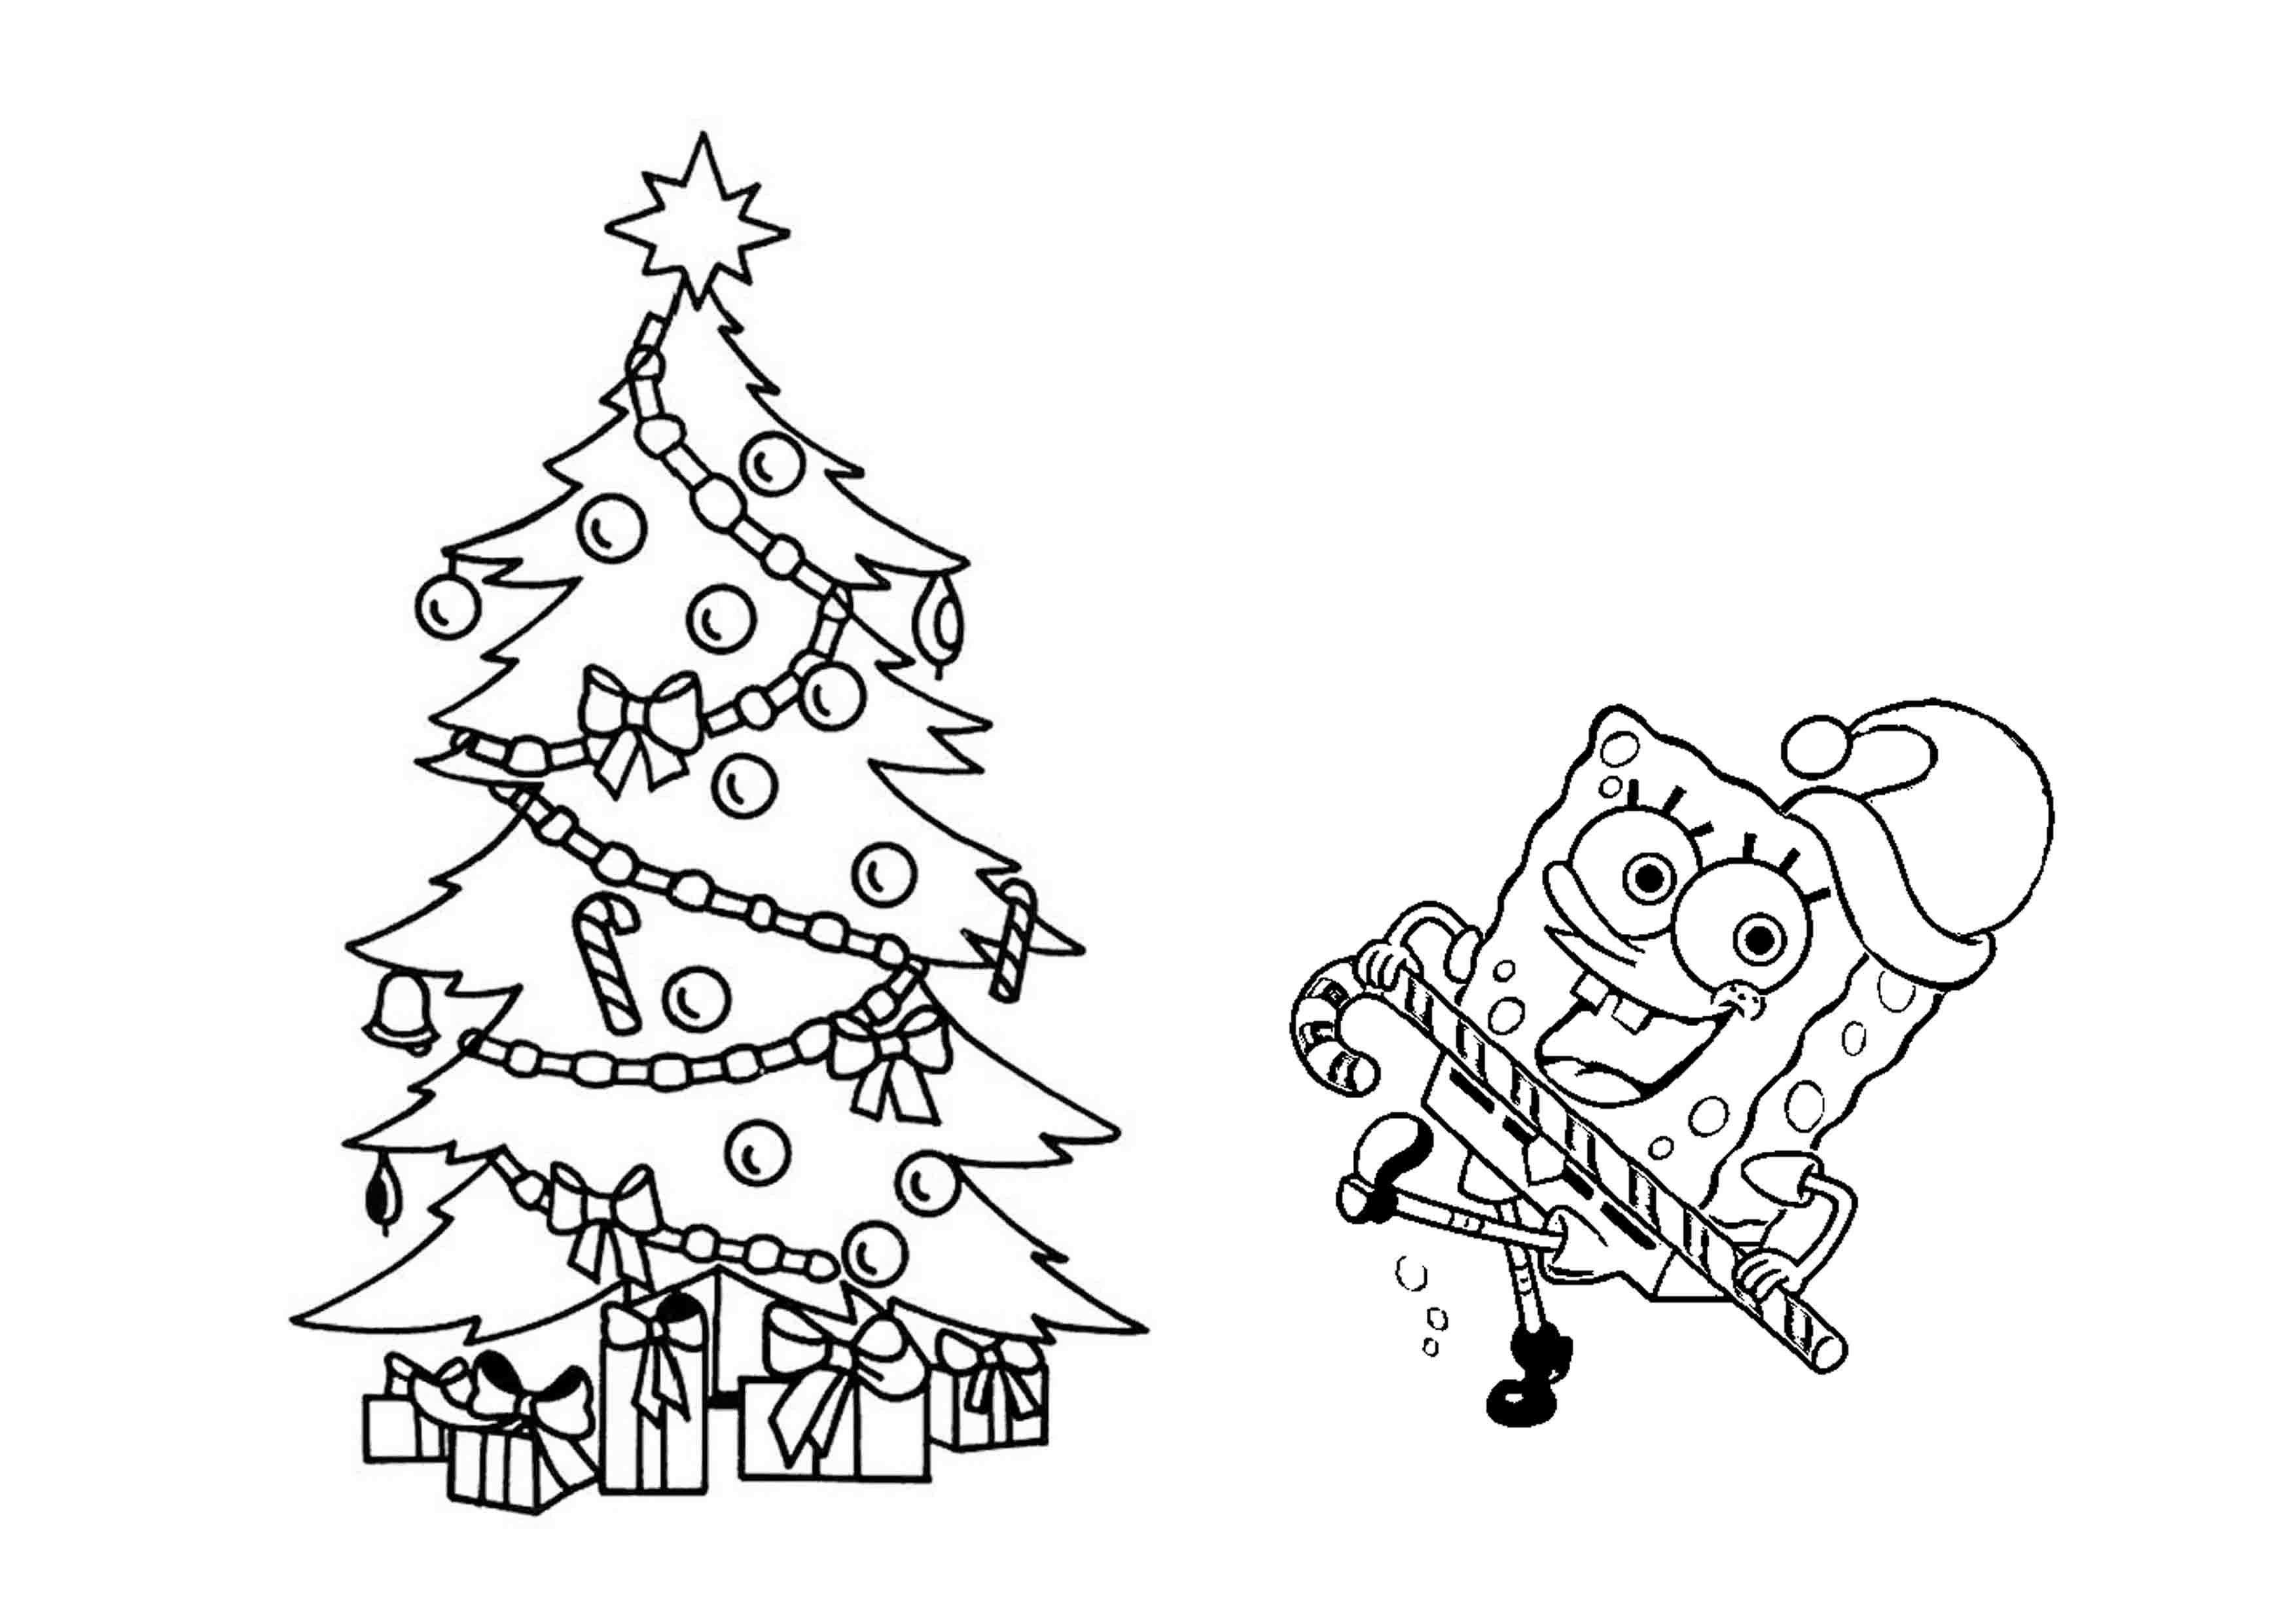 Spongebob Christmas Coloring Page